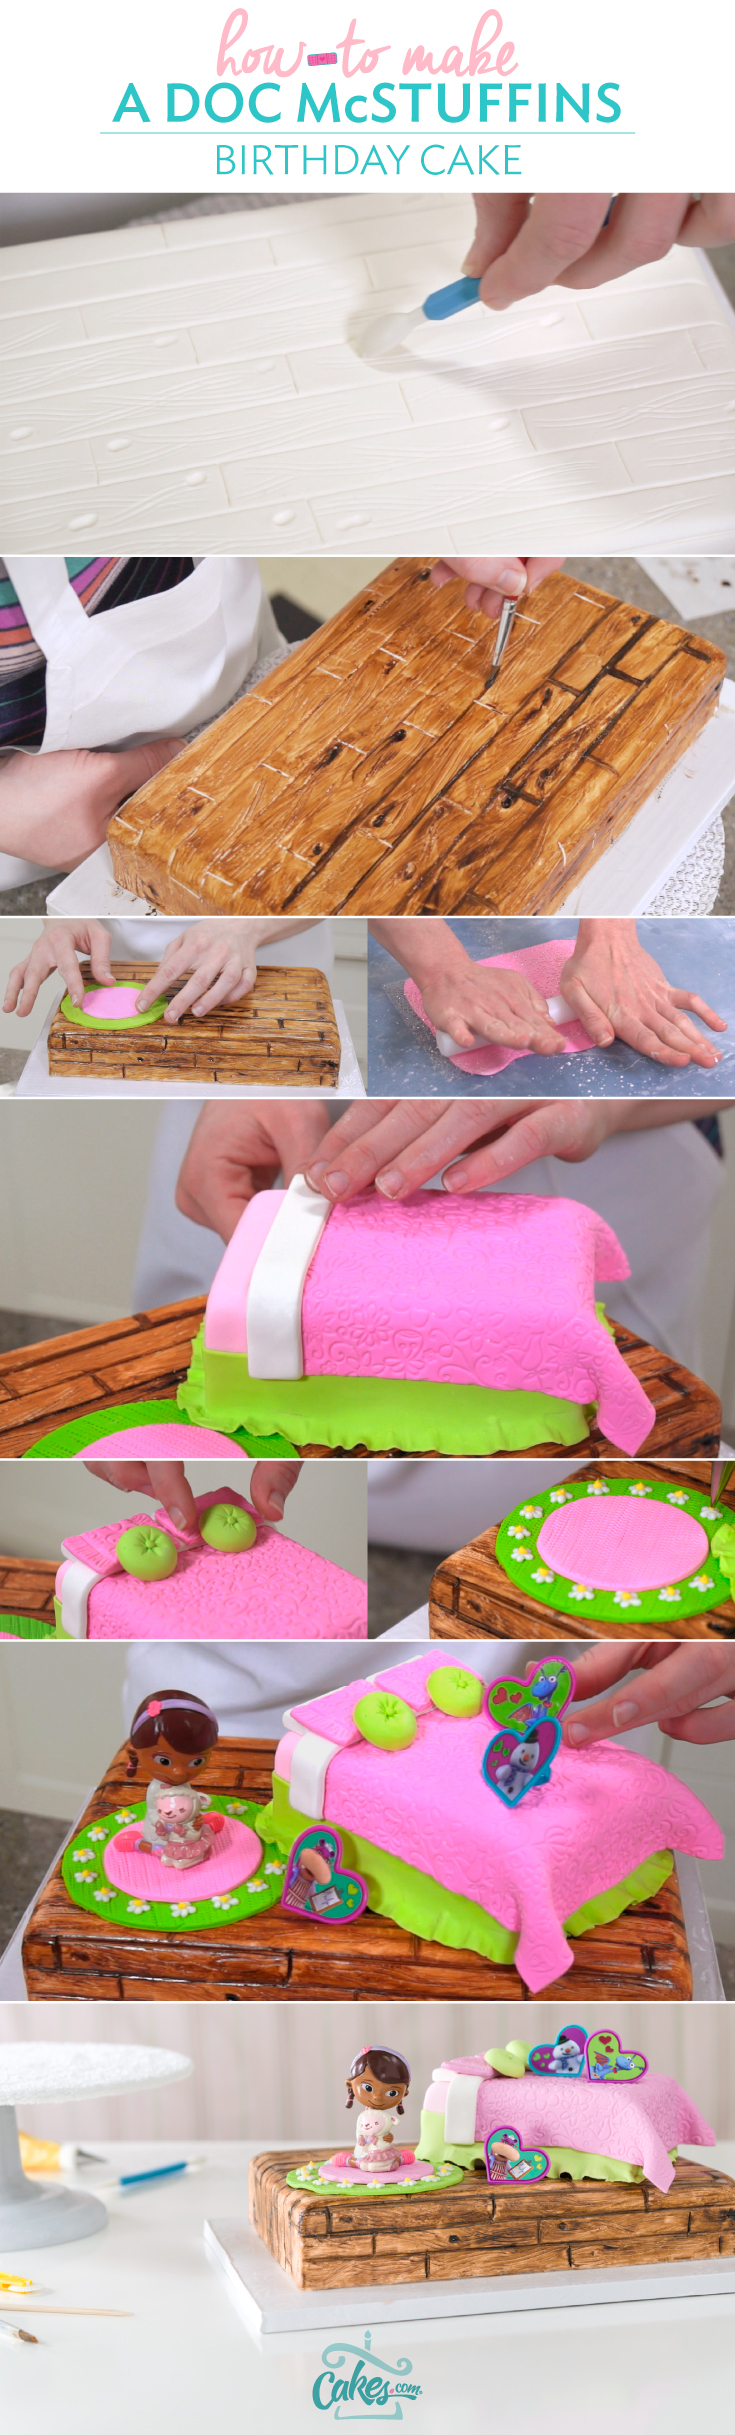 Click for step-by-step tutorial so you can make a Doc McStuffins birthday party cake with fondant details.